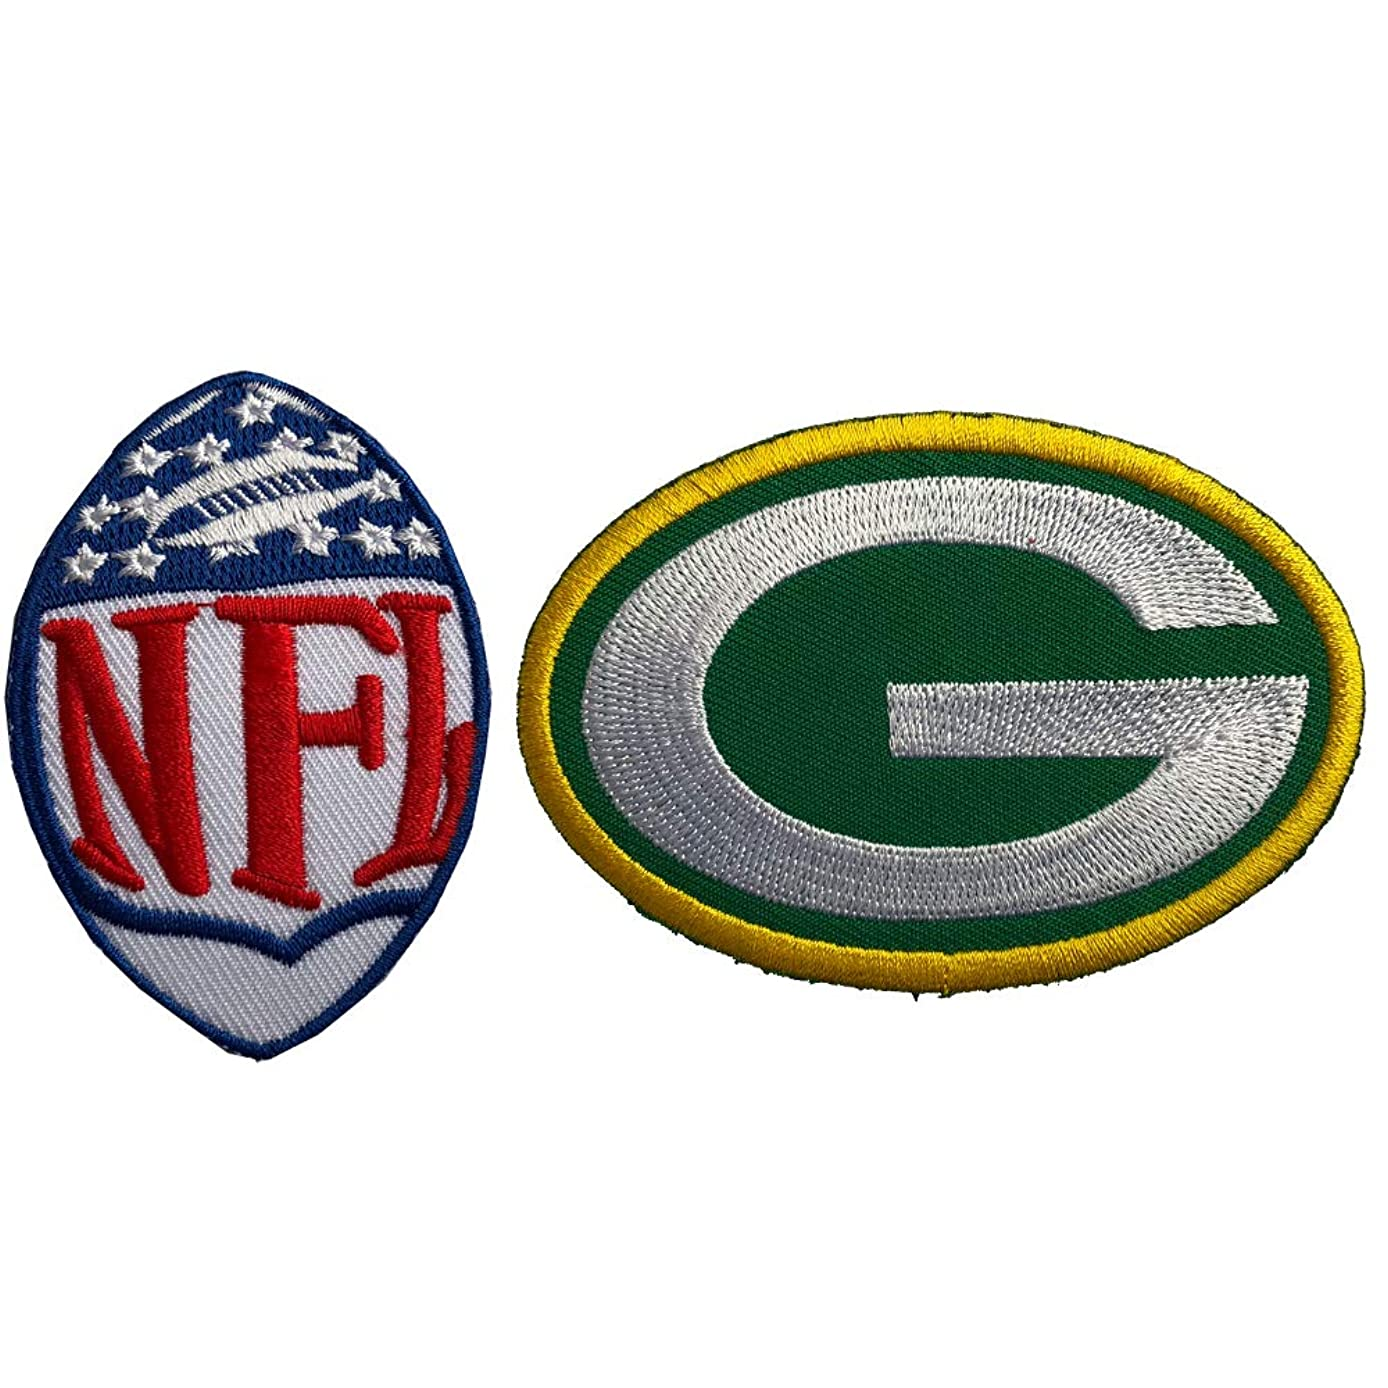 Hipatch Green Bay Packers Embroidered Patch Iron on Logo Vest Jacket Cap Hoodie Backpack Patch Iron On/sew on Patch Set of 2Pcs